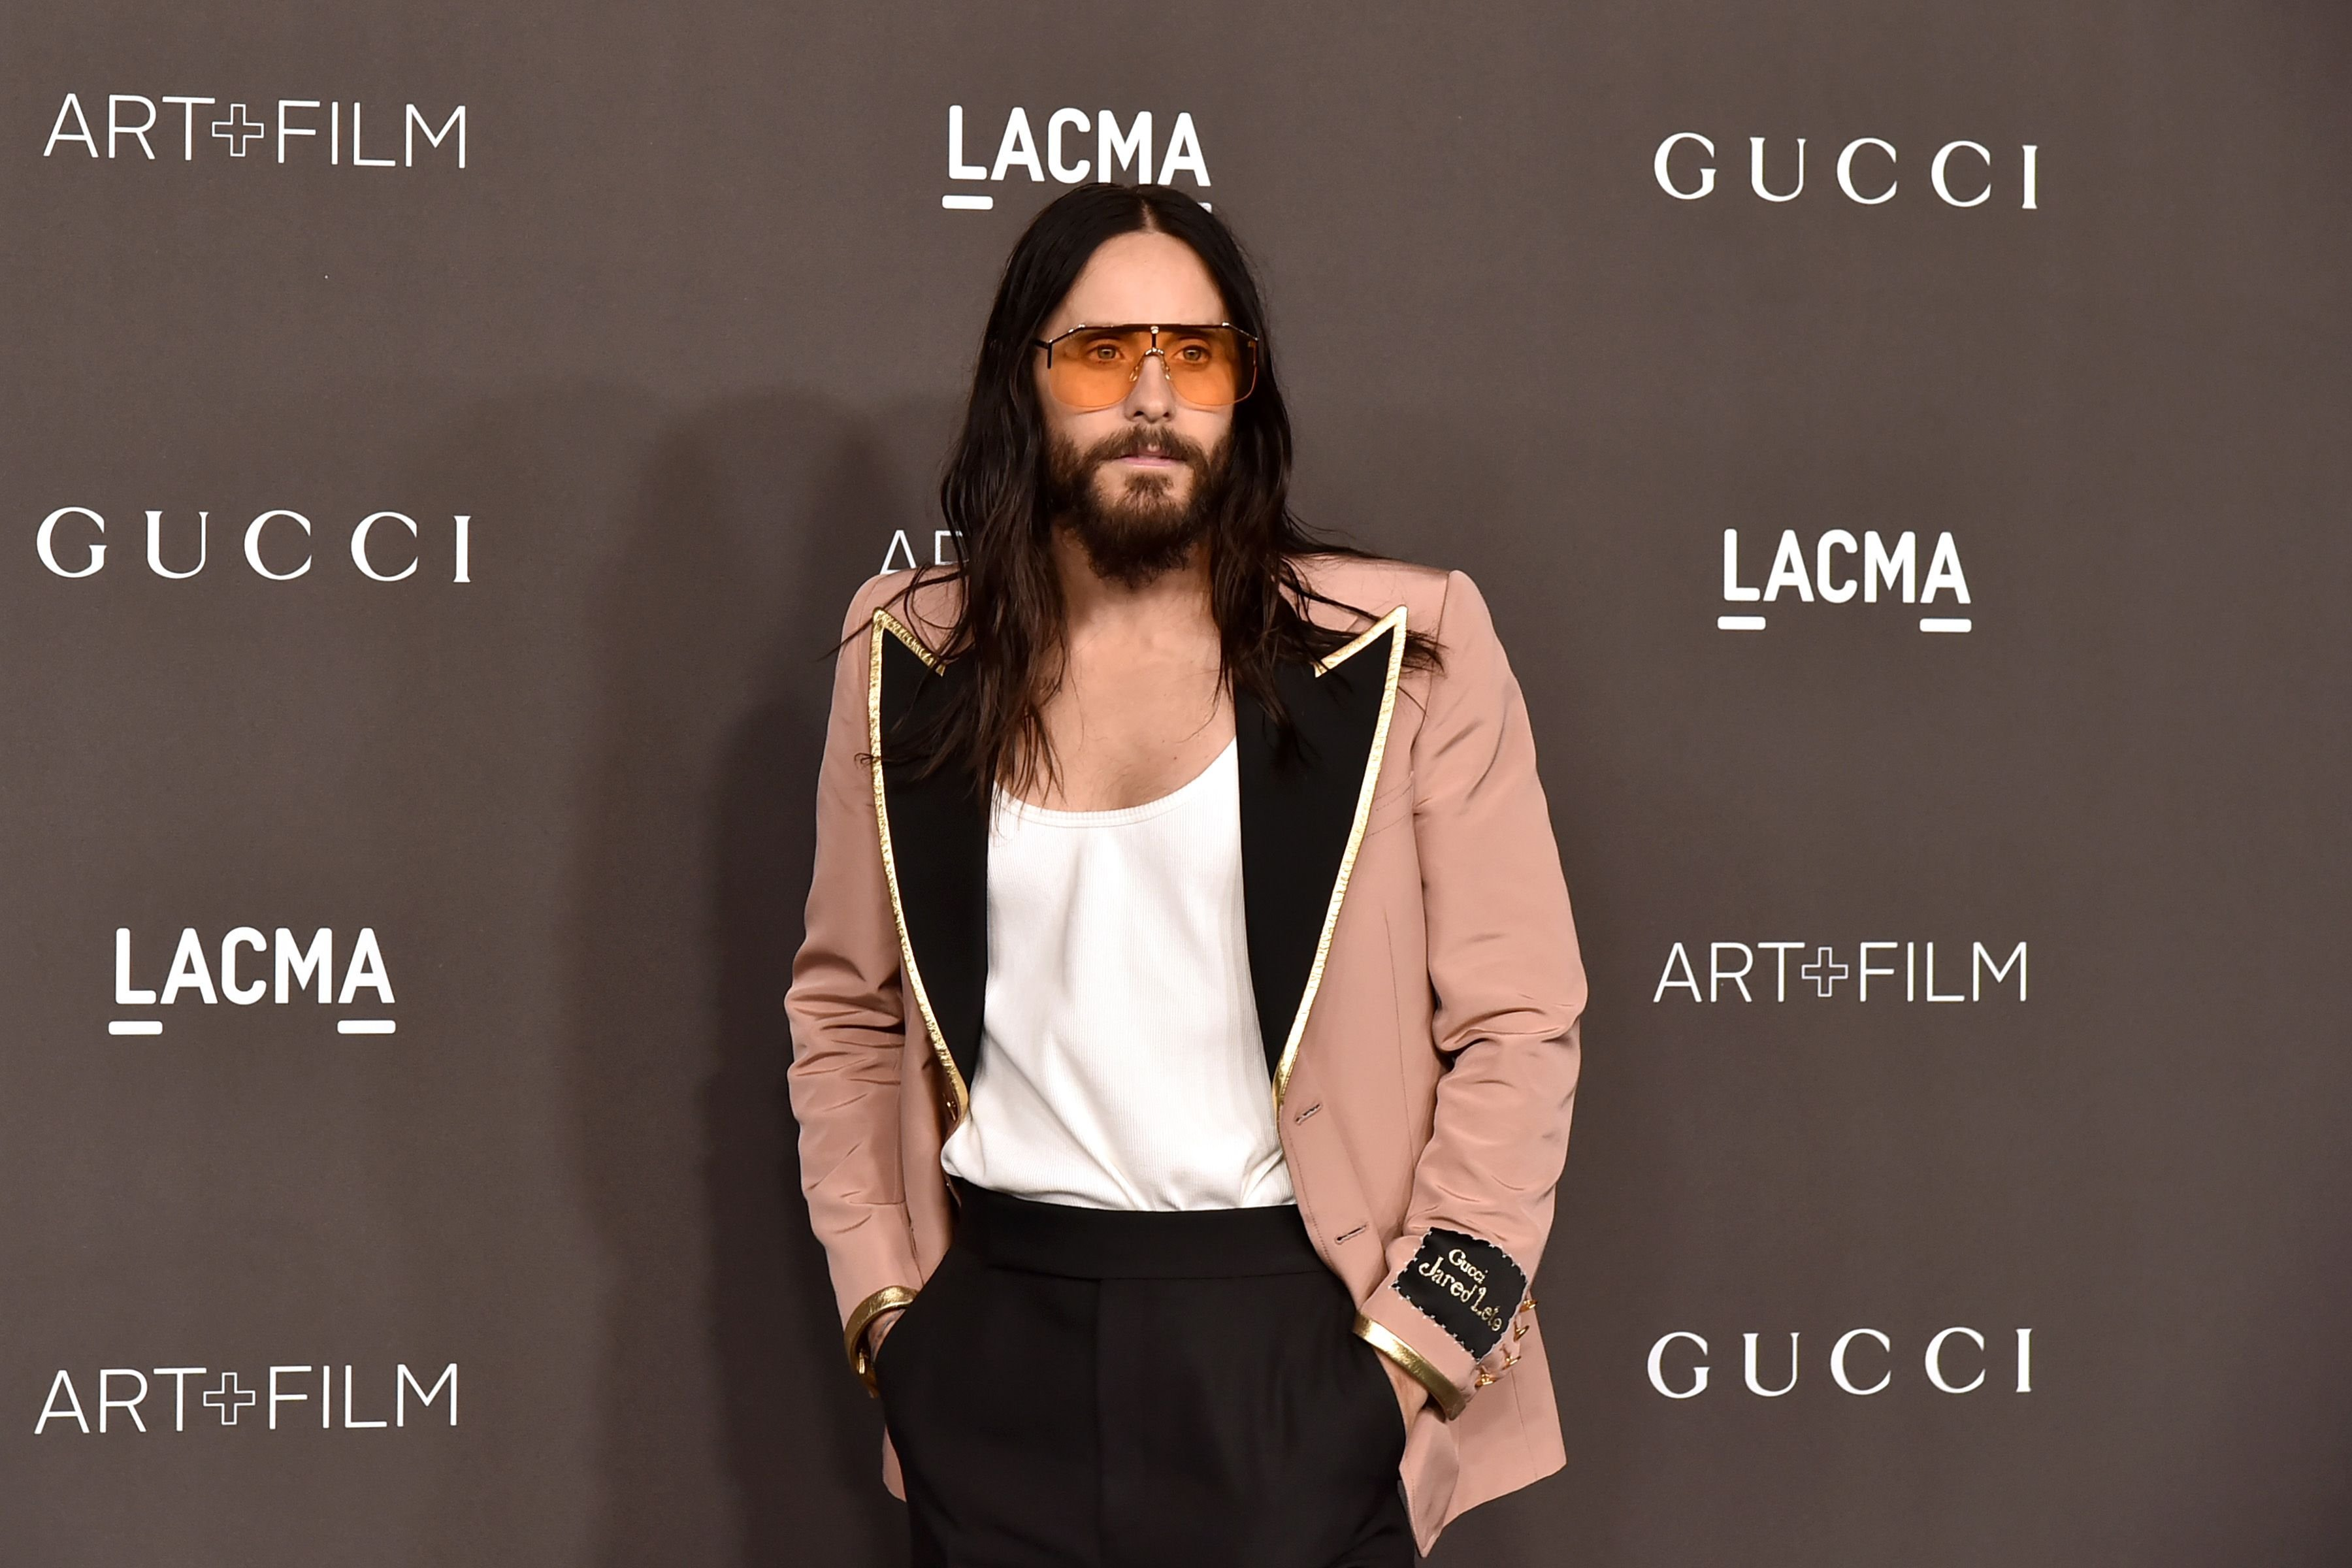 Jared Leto at the 2019 LACMA Art + Film Gala at LACMA on November 02, 2019 in Los Angeles, California | Photo: Getty Images